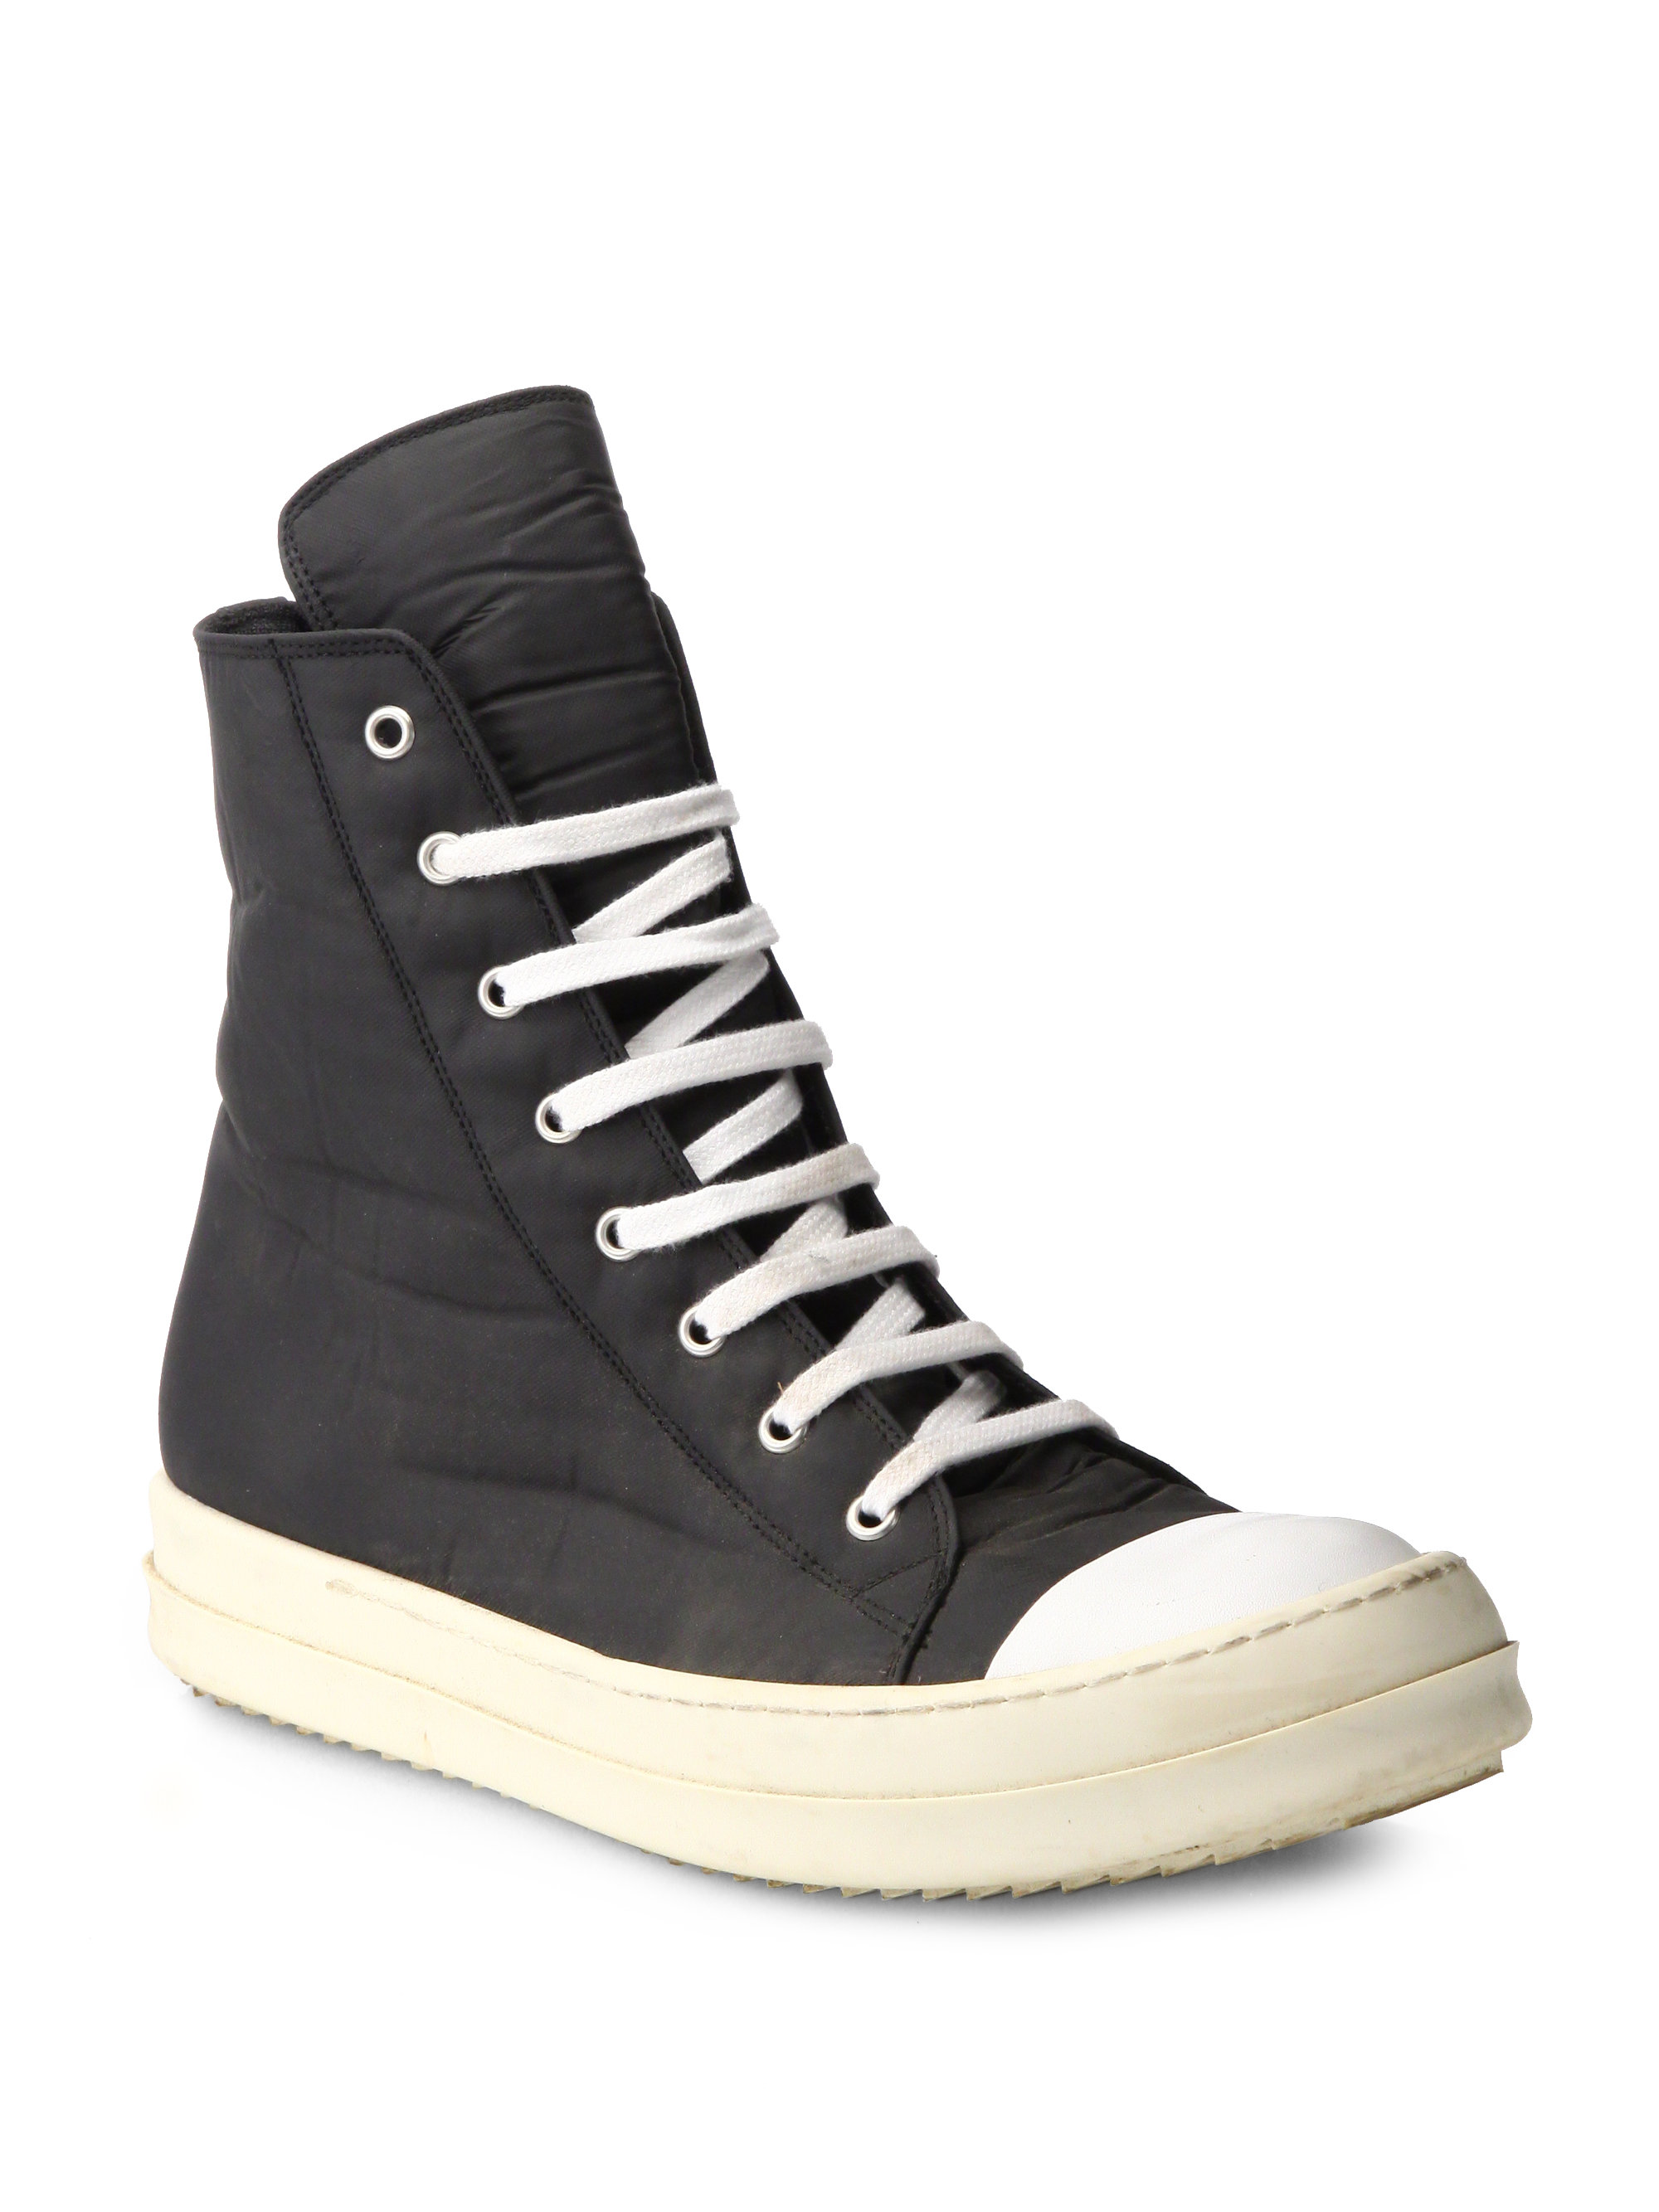 Rick Owens Nylon Canvas Cap Toe High-Top Sneakers Free Shipping Low Price Cheap Shopping Online Free Shipping Discounts phbaCwpT